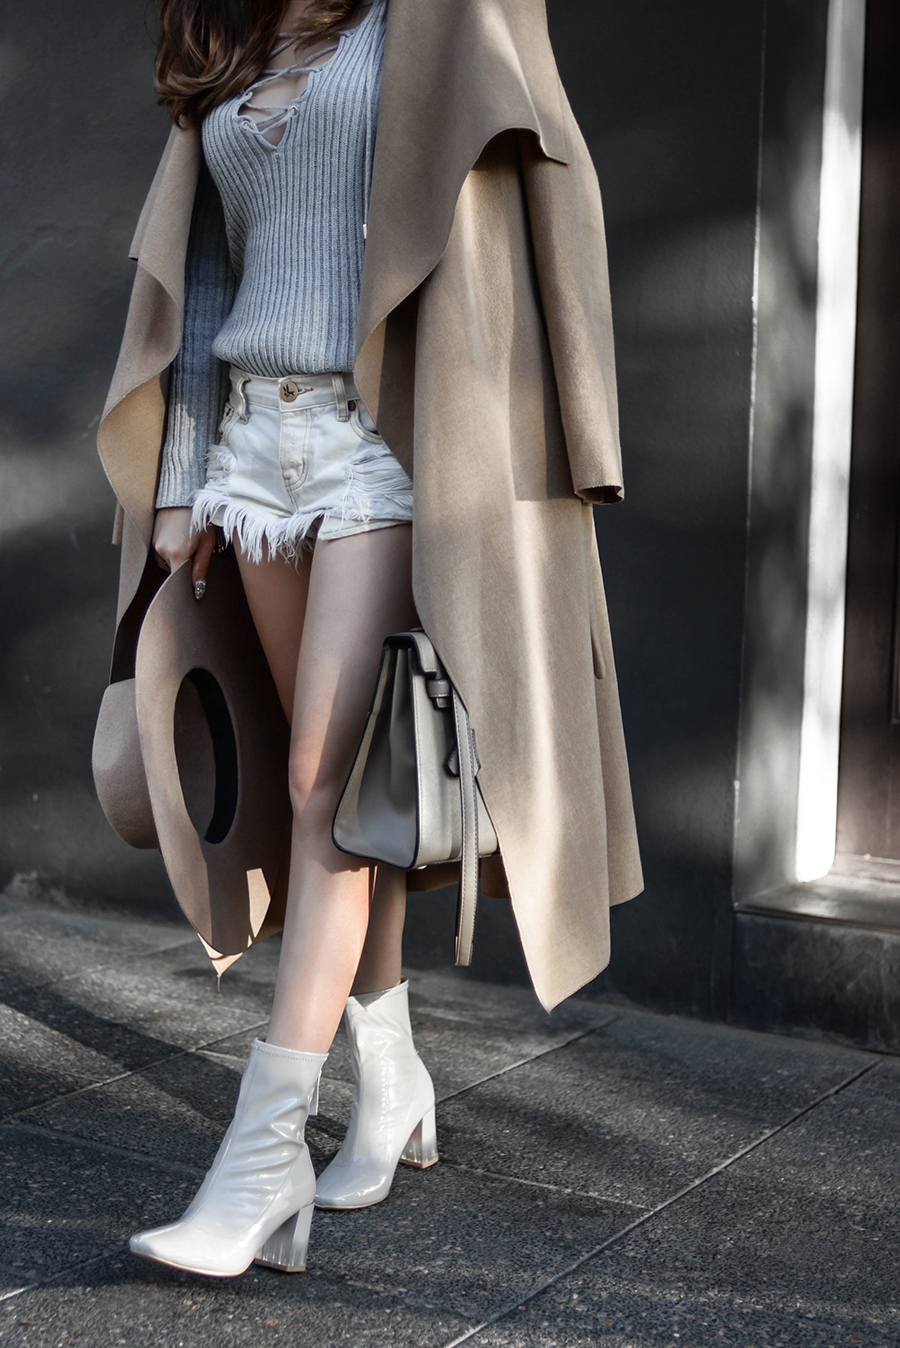 willabelle-ong-paledivision-street-style-fashion-travel-lifestyle-blog-singapore-australia-perth-perspex-heel-boots-denim-shorts-grey-outfit-editorial-fashionweek-2